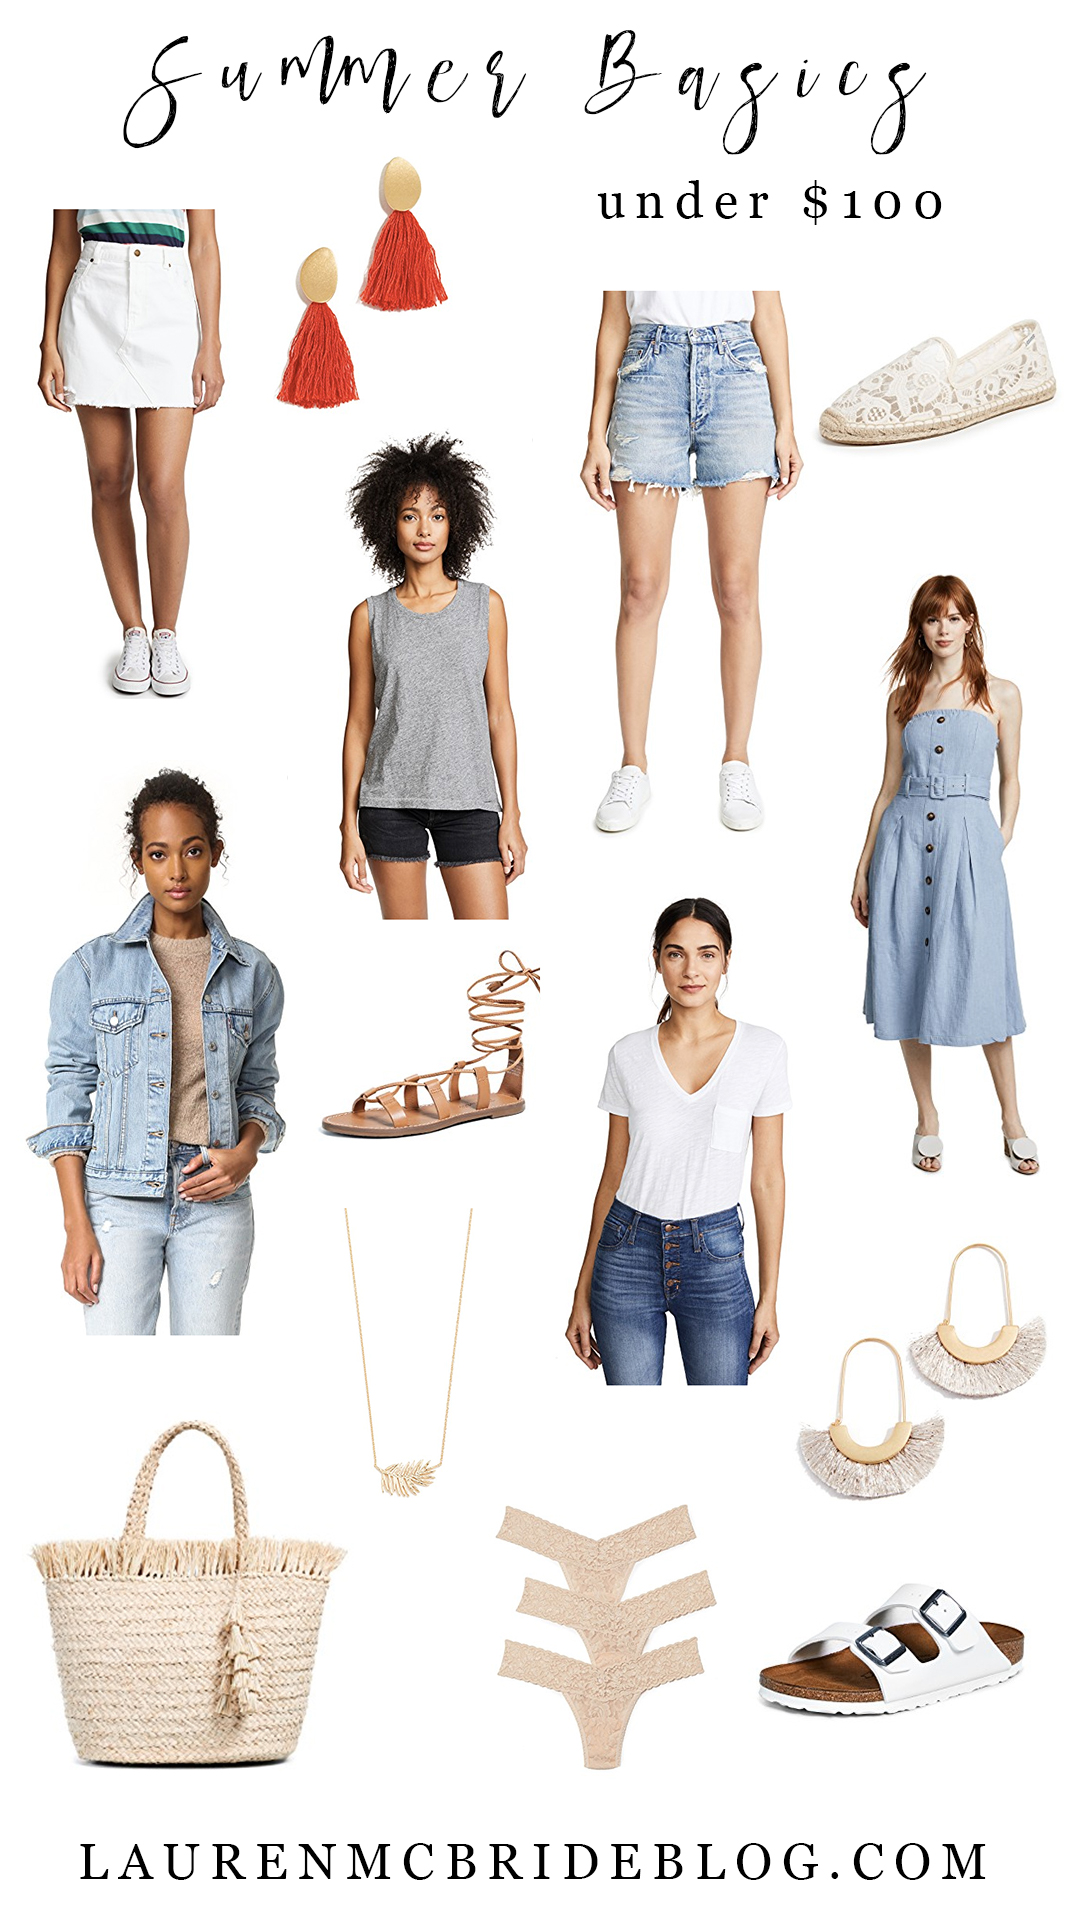 Connecticut life and style blogger Lauren McBride shares summer basics under $100 including staple wardrobe pieces that are versatile and will carry into the next season.